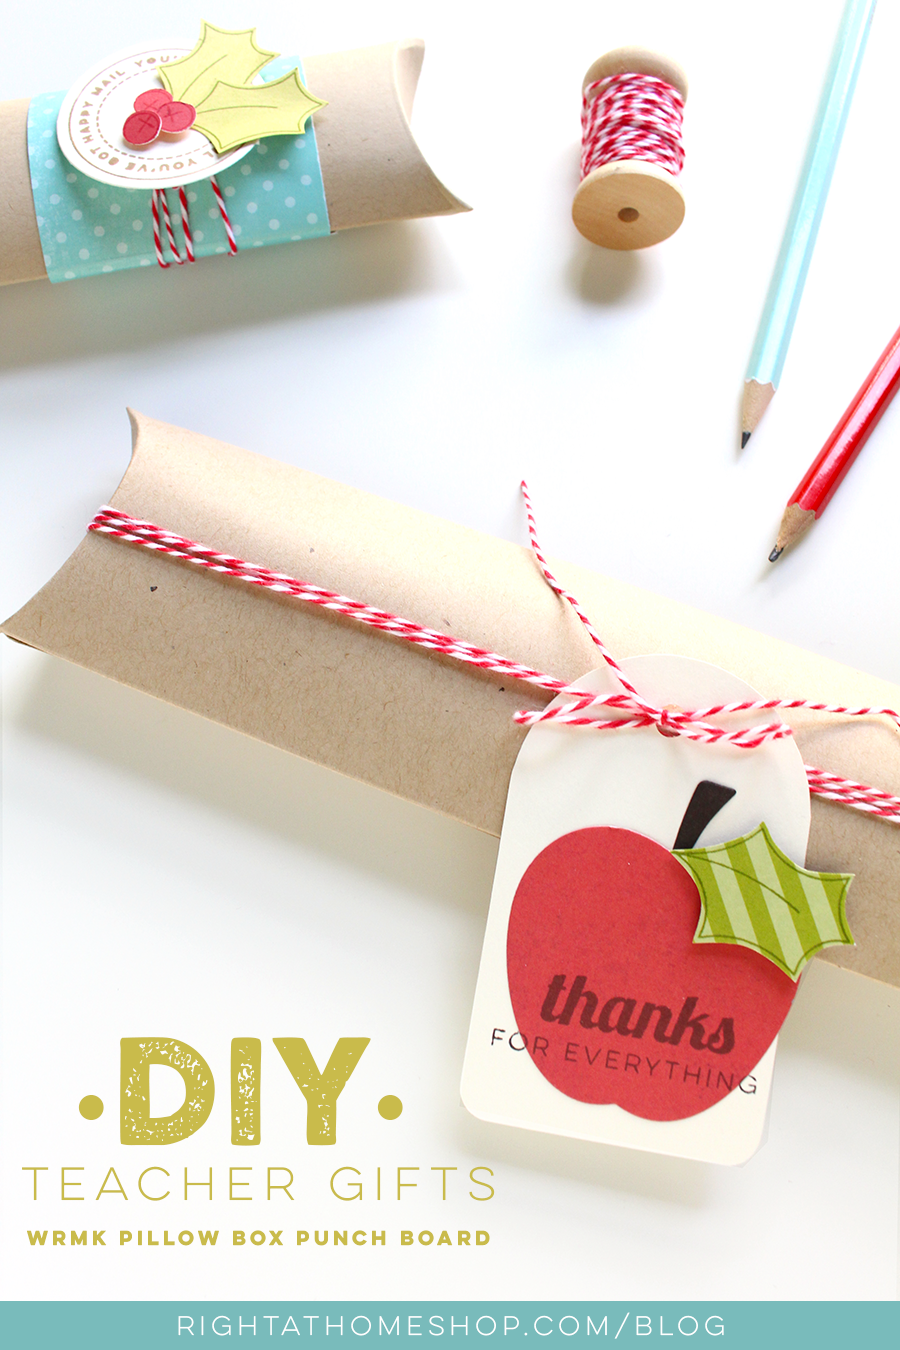 DIY Teacher Gifts Using the WRMK Pillow Box Punch Board - Right at Home Shop